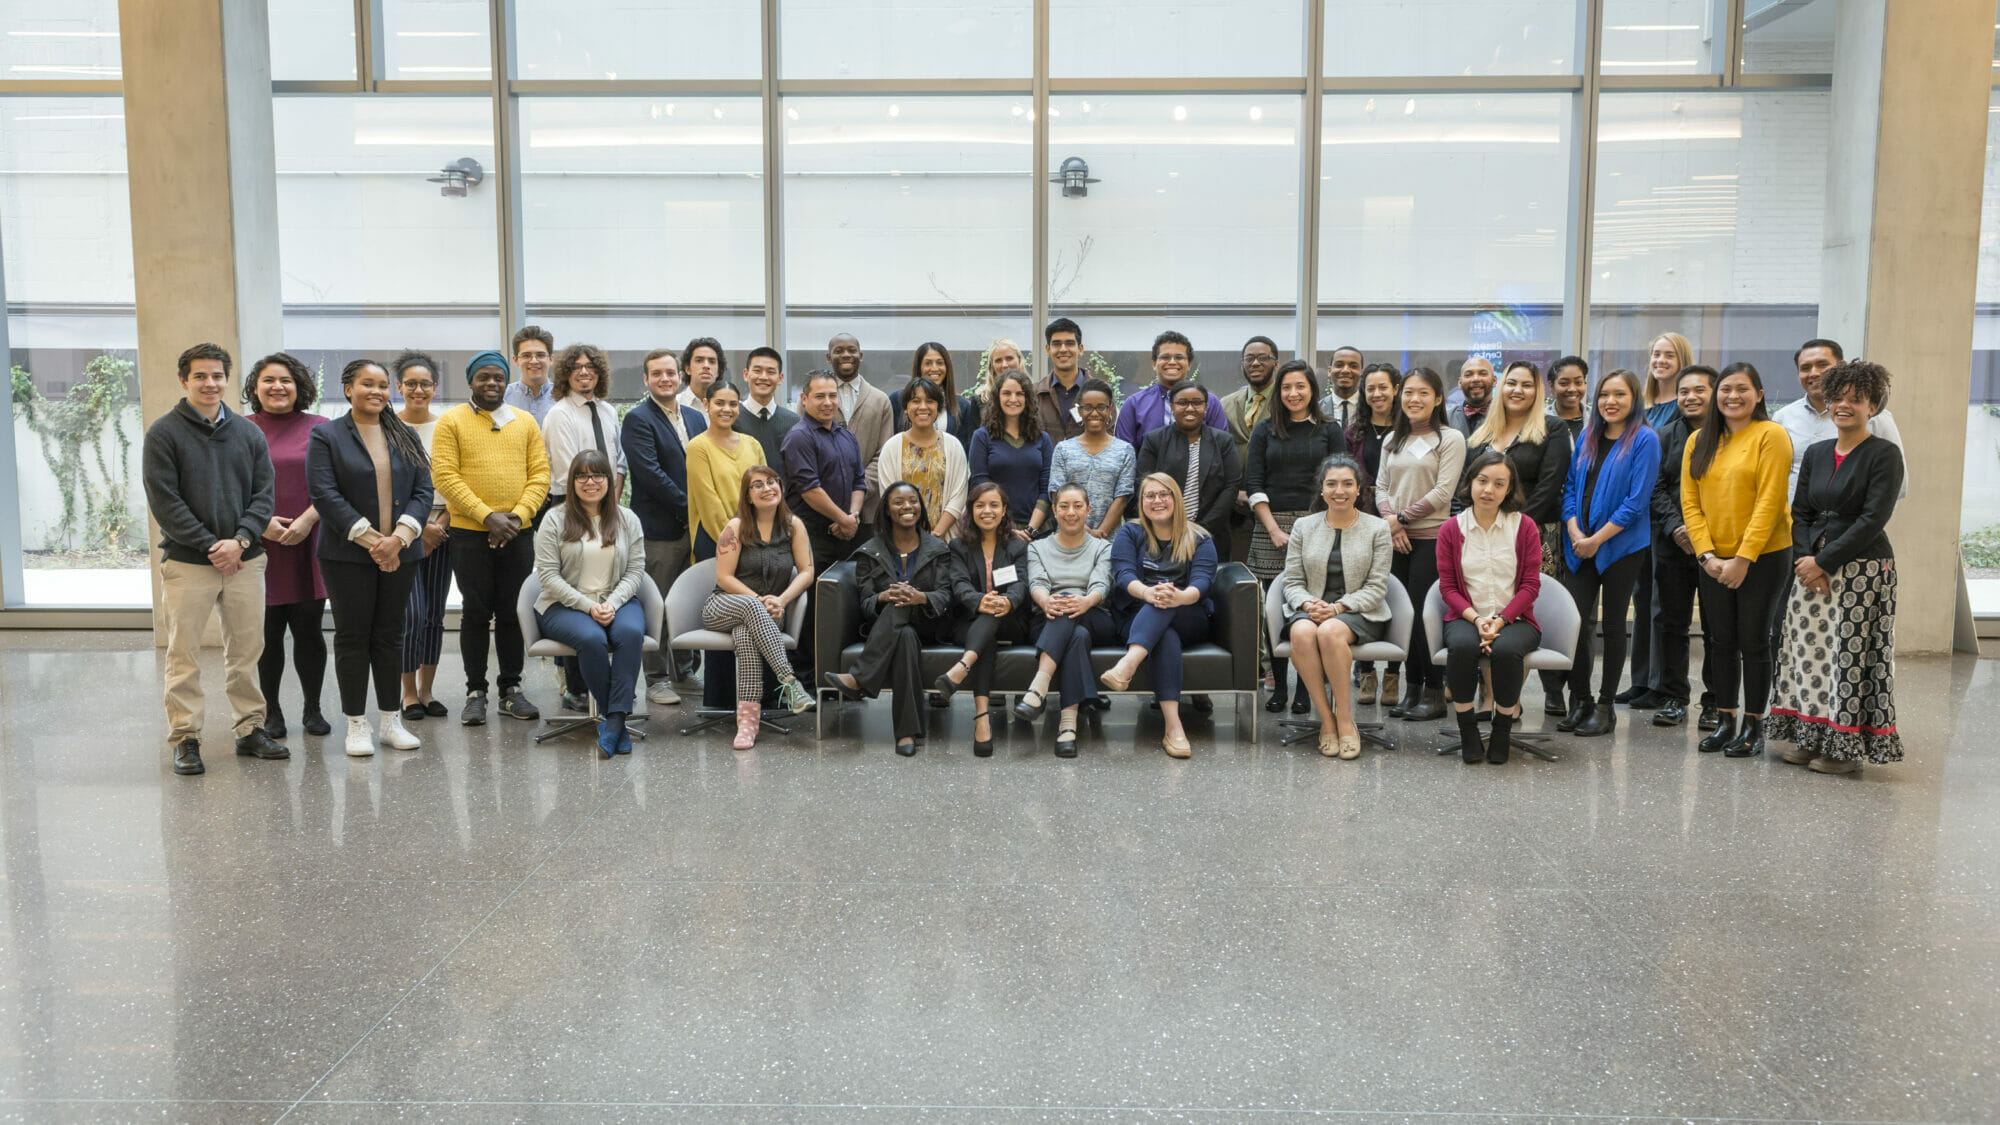 Attendees from Discover UChicago 2017